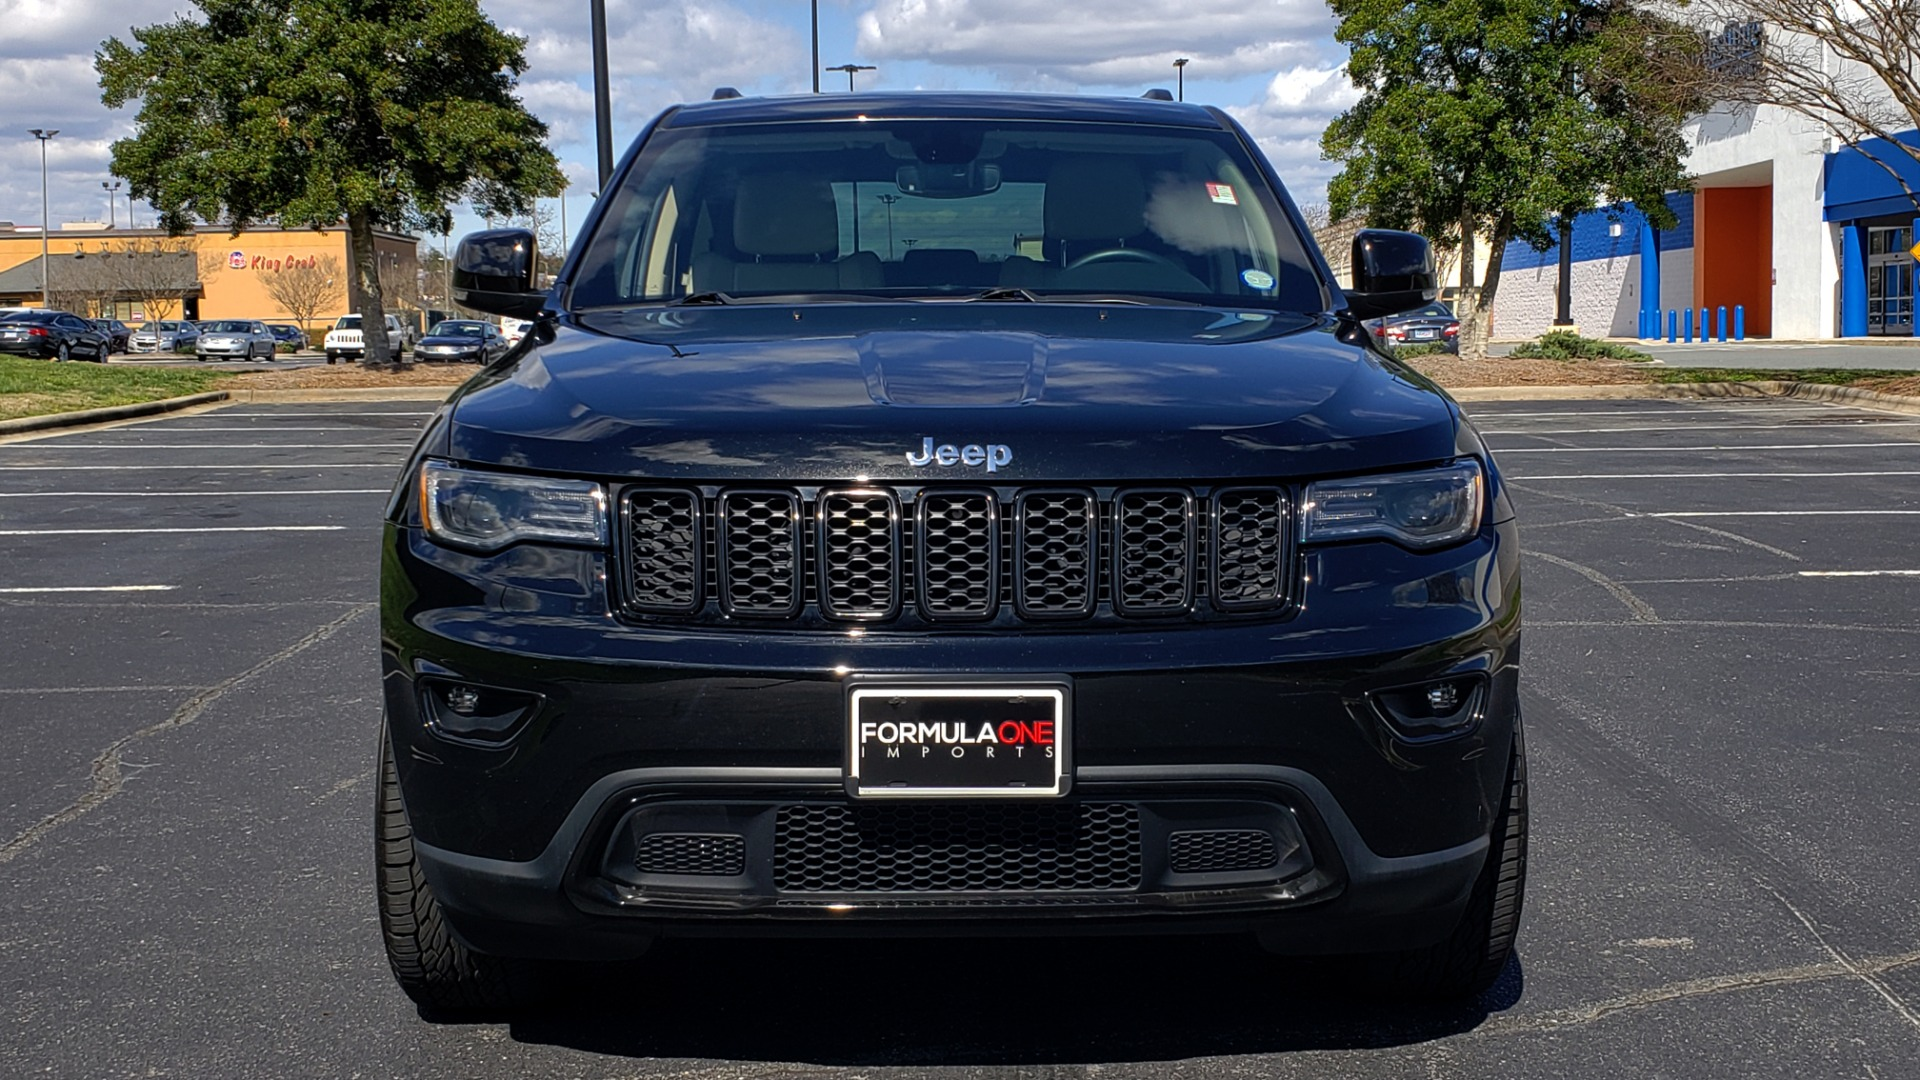 Used 2018 Jeep GRAND CHEROKEE LIMITED 4X4 / NAV / SUNROOF / HTD STS / REARVIEW for sale Sold at Formula Imports in Charlotte NC 28227 25